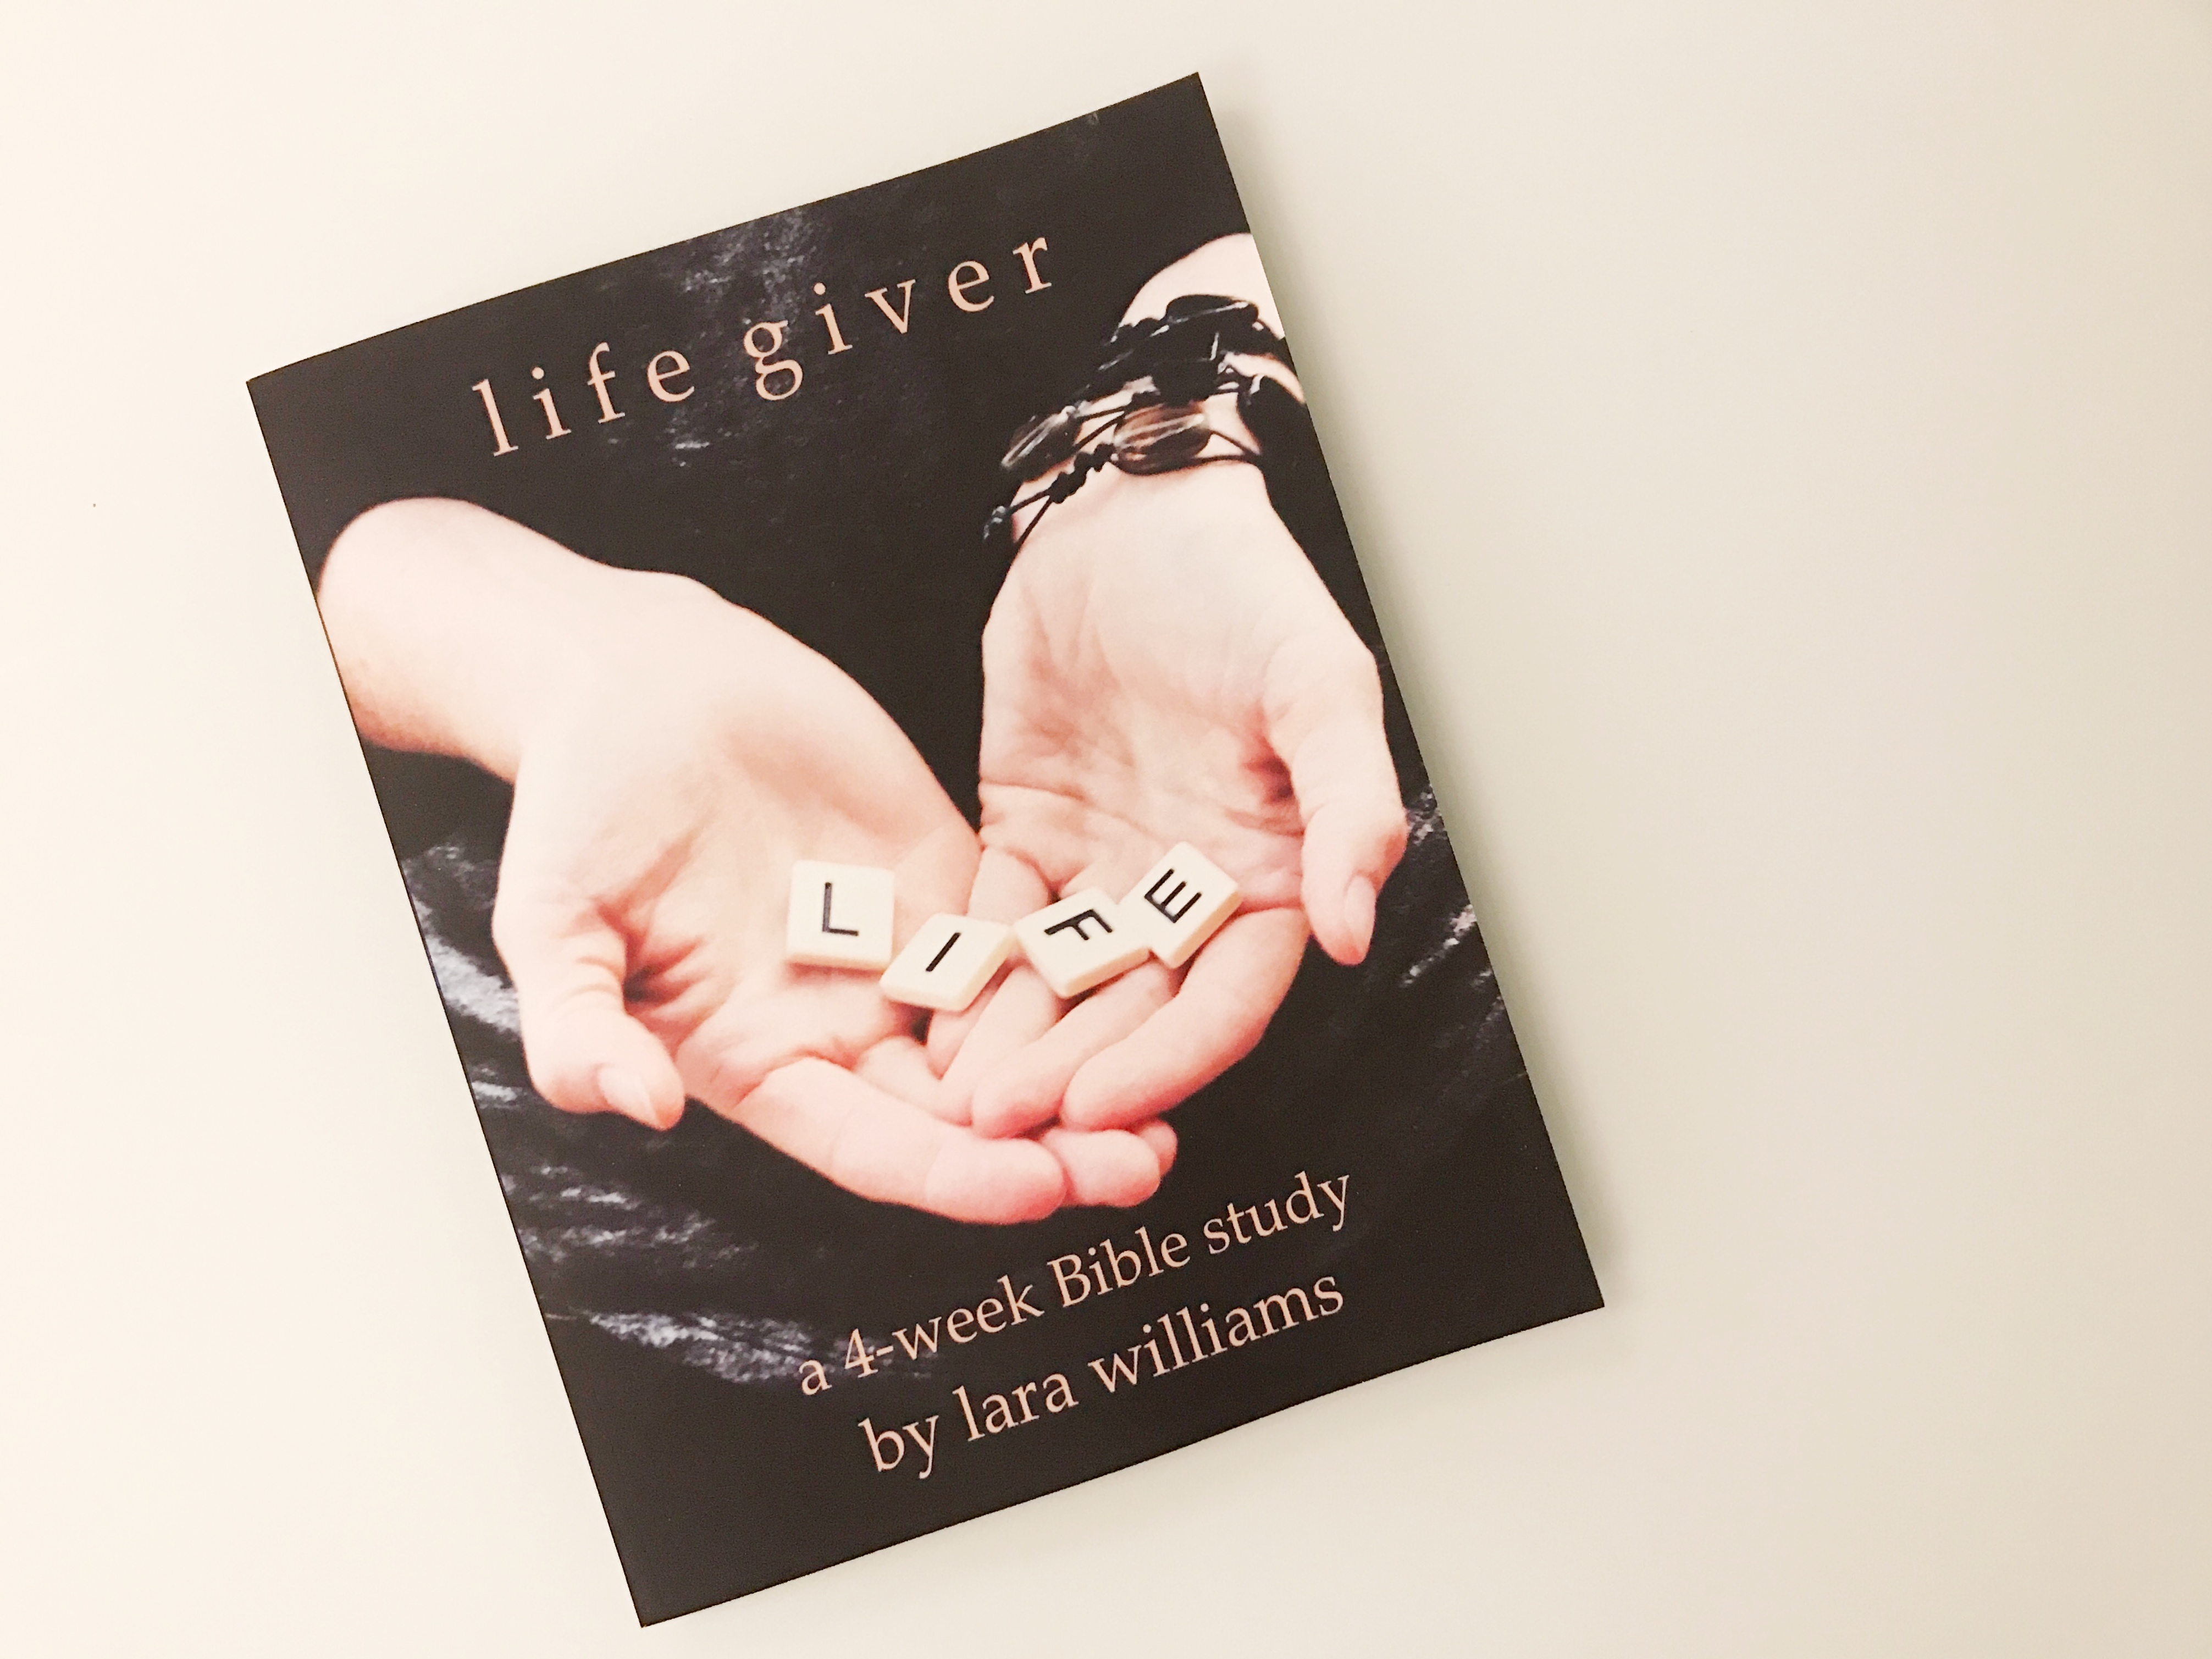 Life Giver by Lara Williams